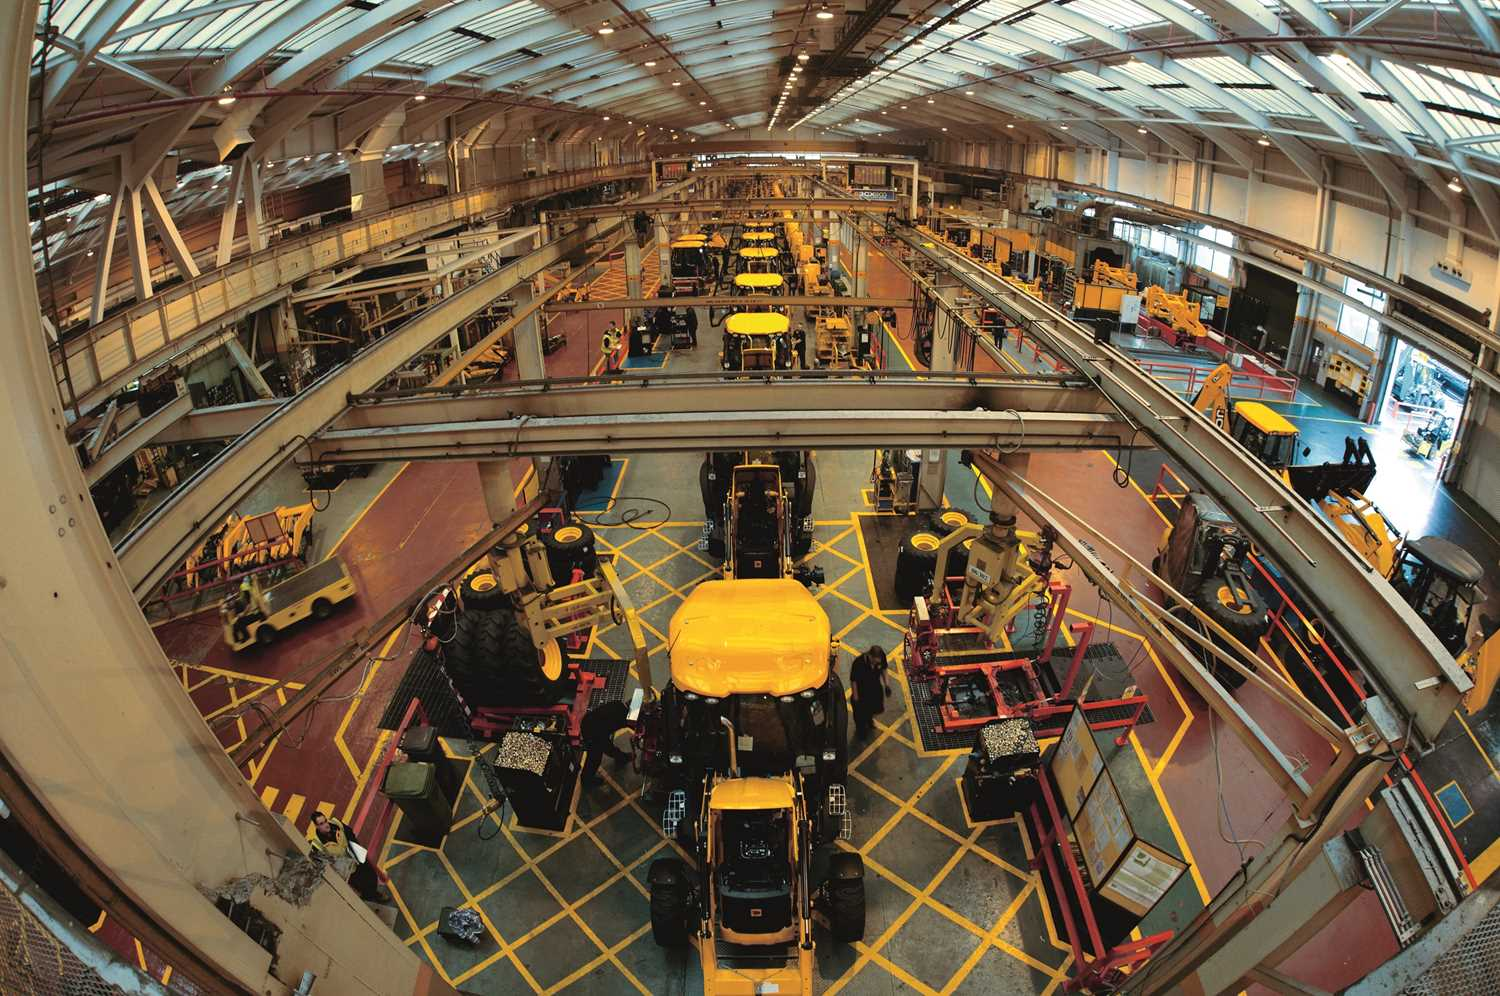 A VIP JCB Factory Tour for a Day with JCB's Managing Director, with a Delicious Organic Lunch for